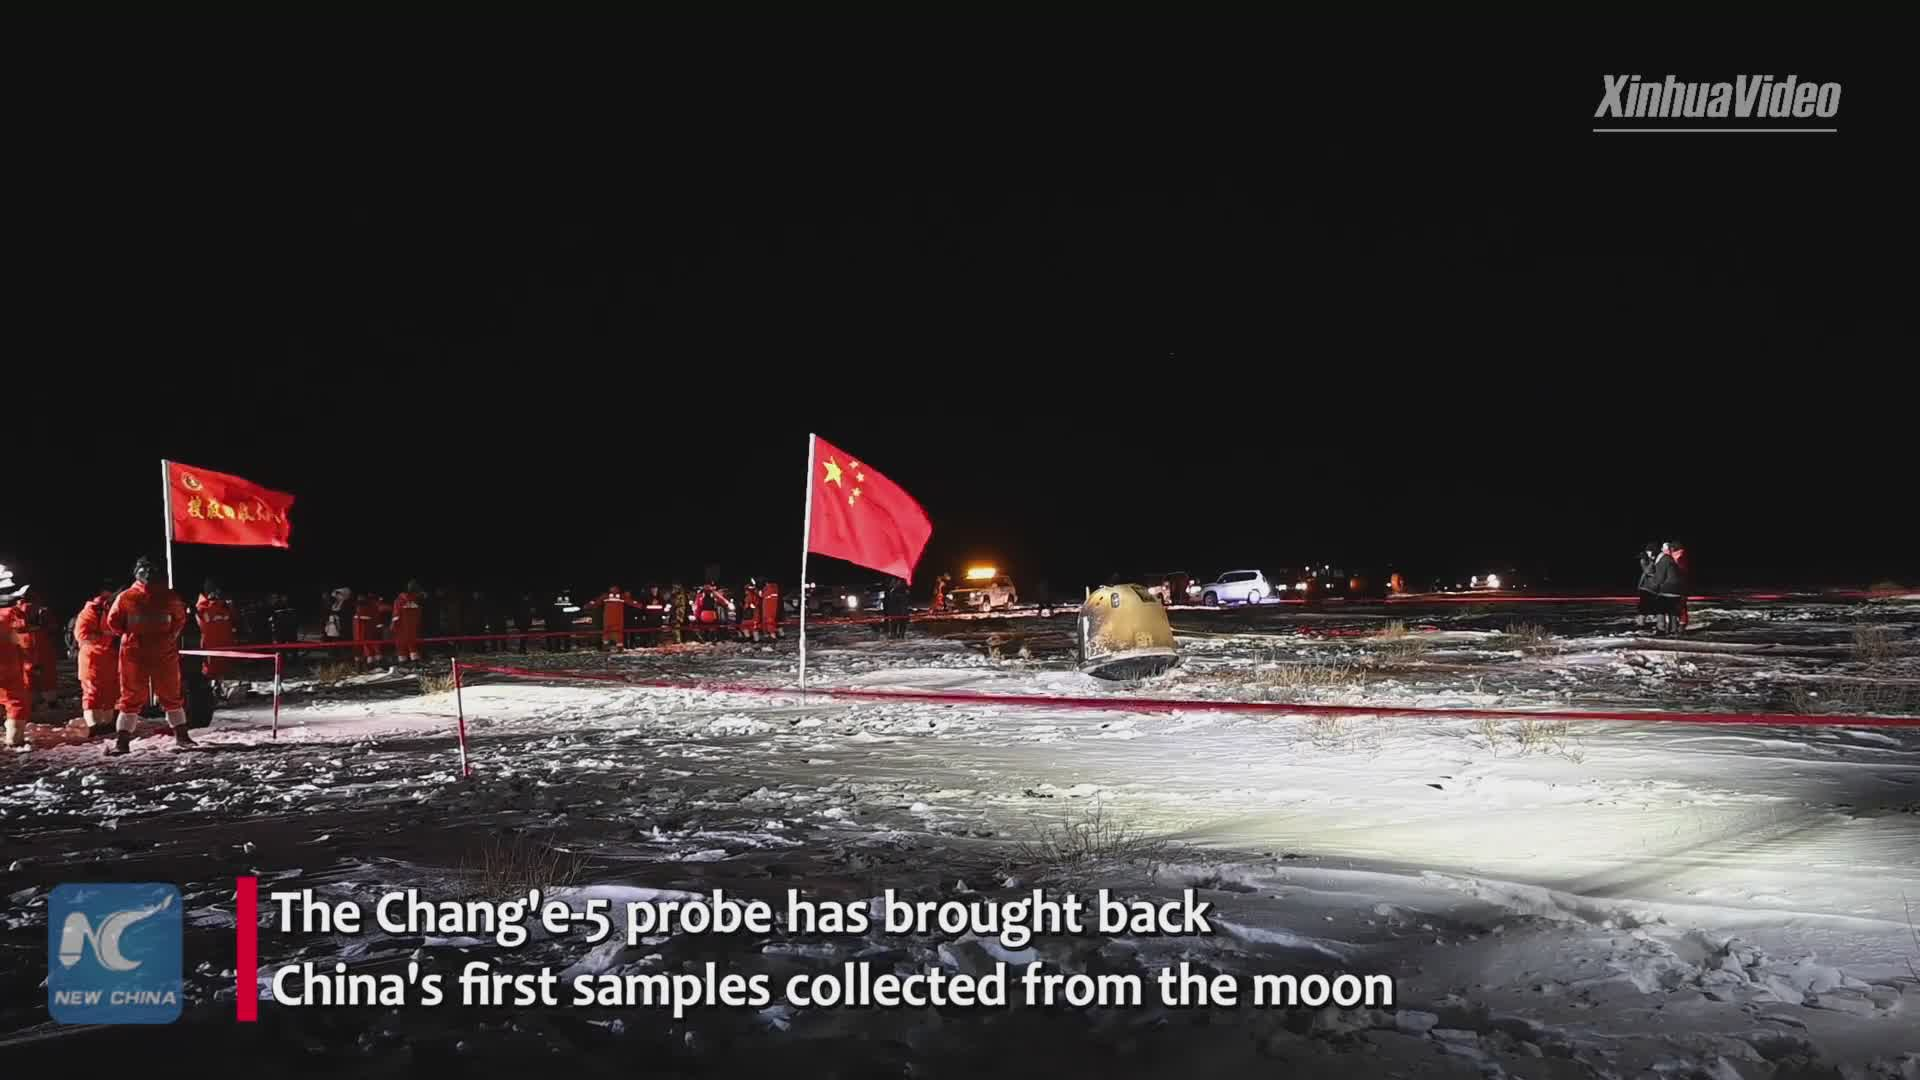 China Focus: Cultural connotations of China's scientific feats